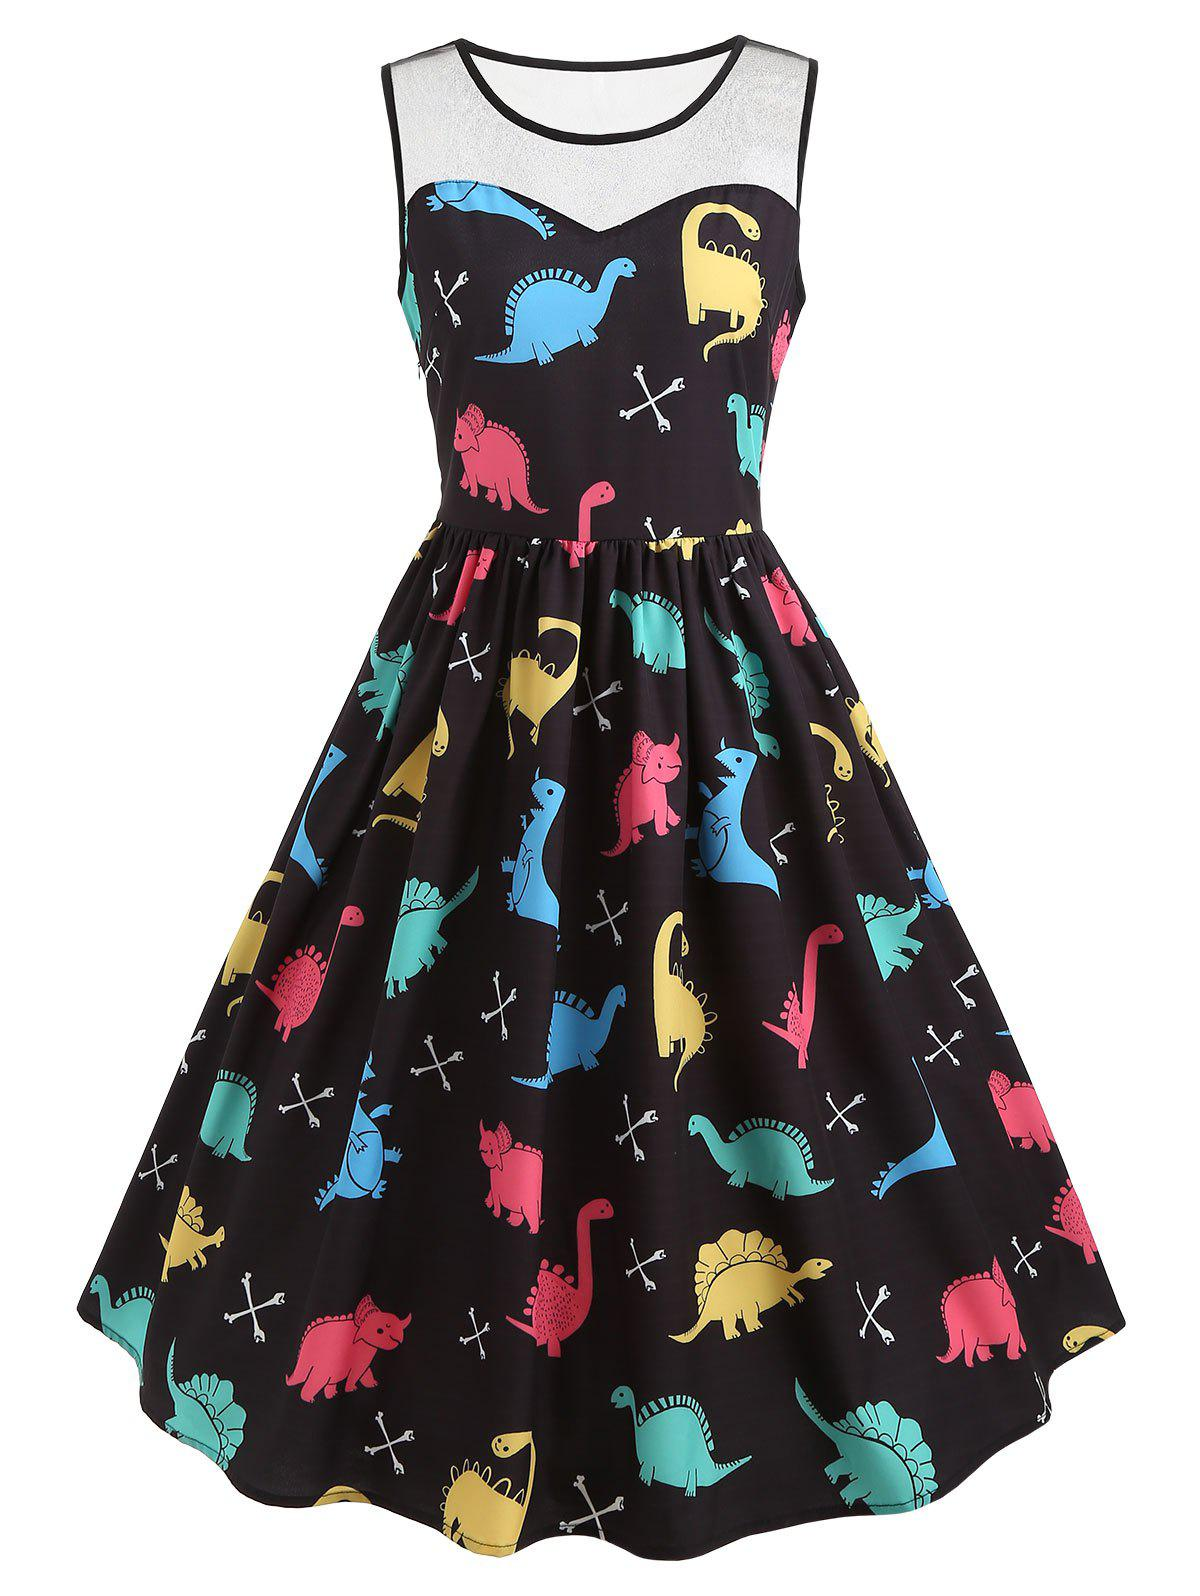 Shop Mesh Insert Cartoon Dinosaur Print Vintage Dress